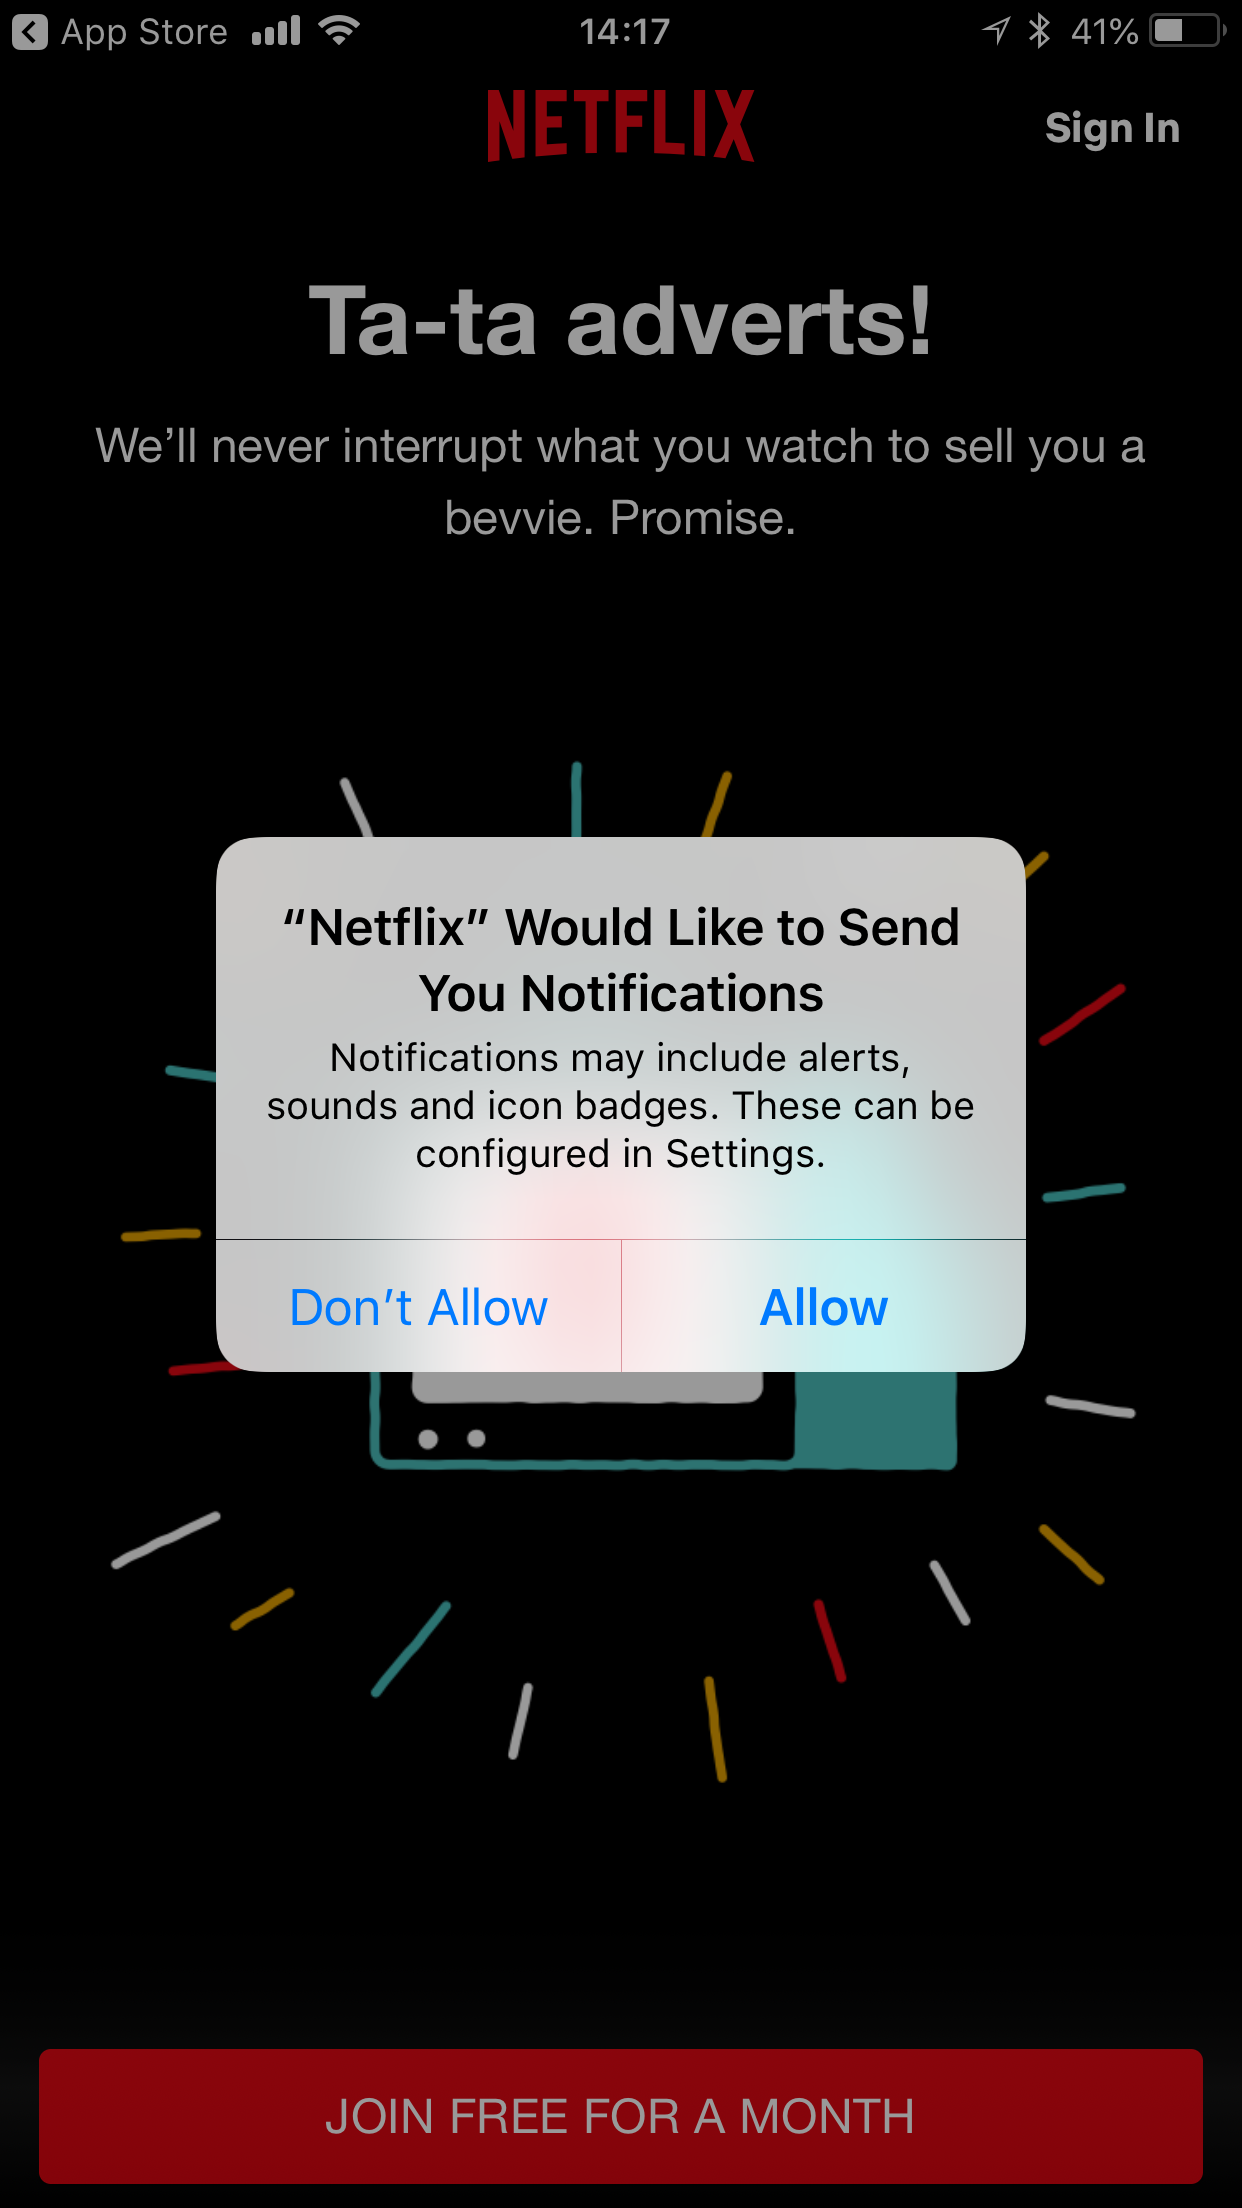 Netflix app permission request push notification